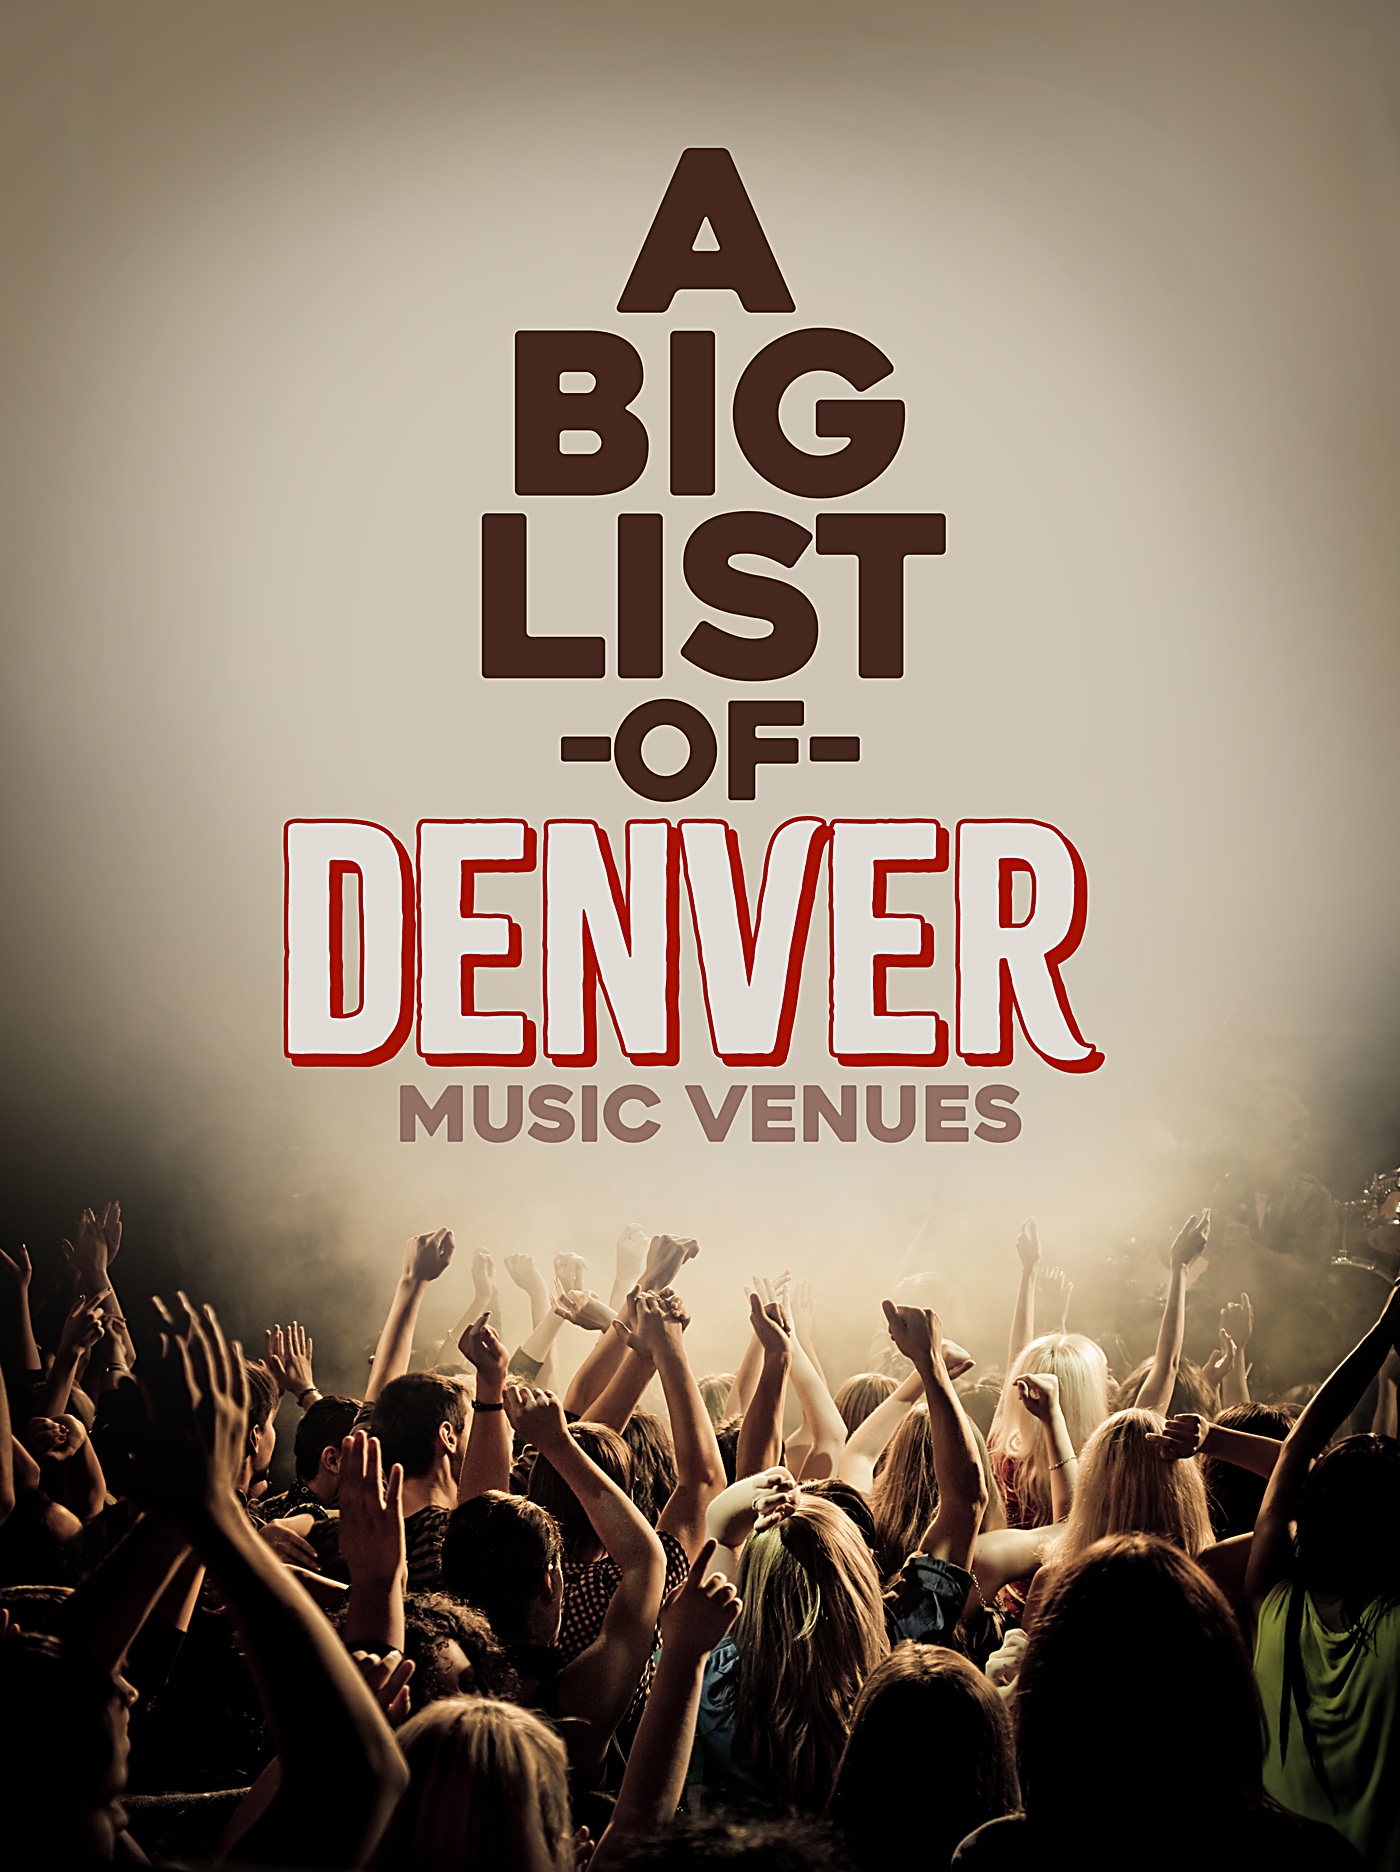 Denver Music & Concert Venue List - Including Red Rocks, Bluebird Theater, Larimer Lounge, Summit Music Hall and many others...